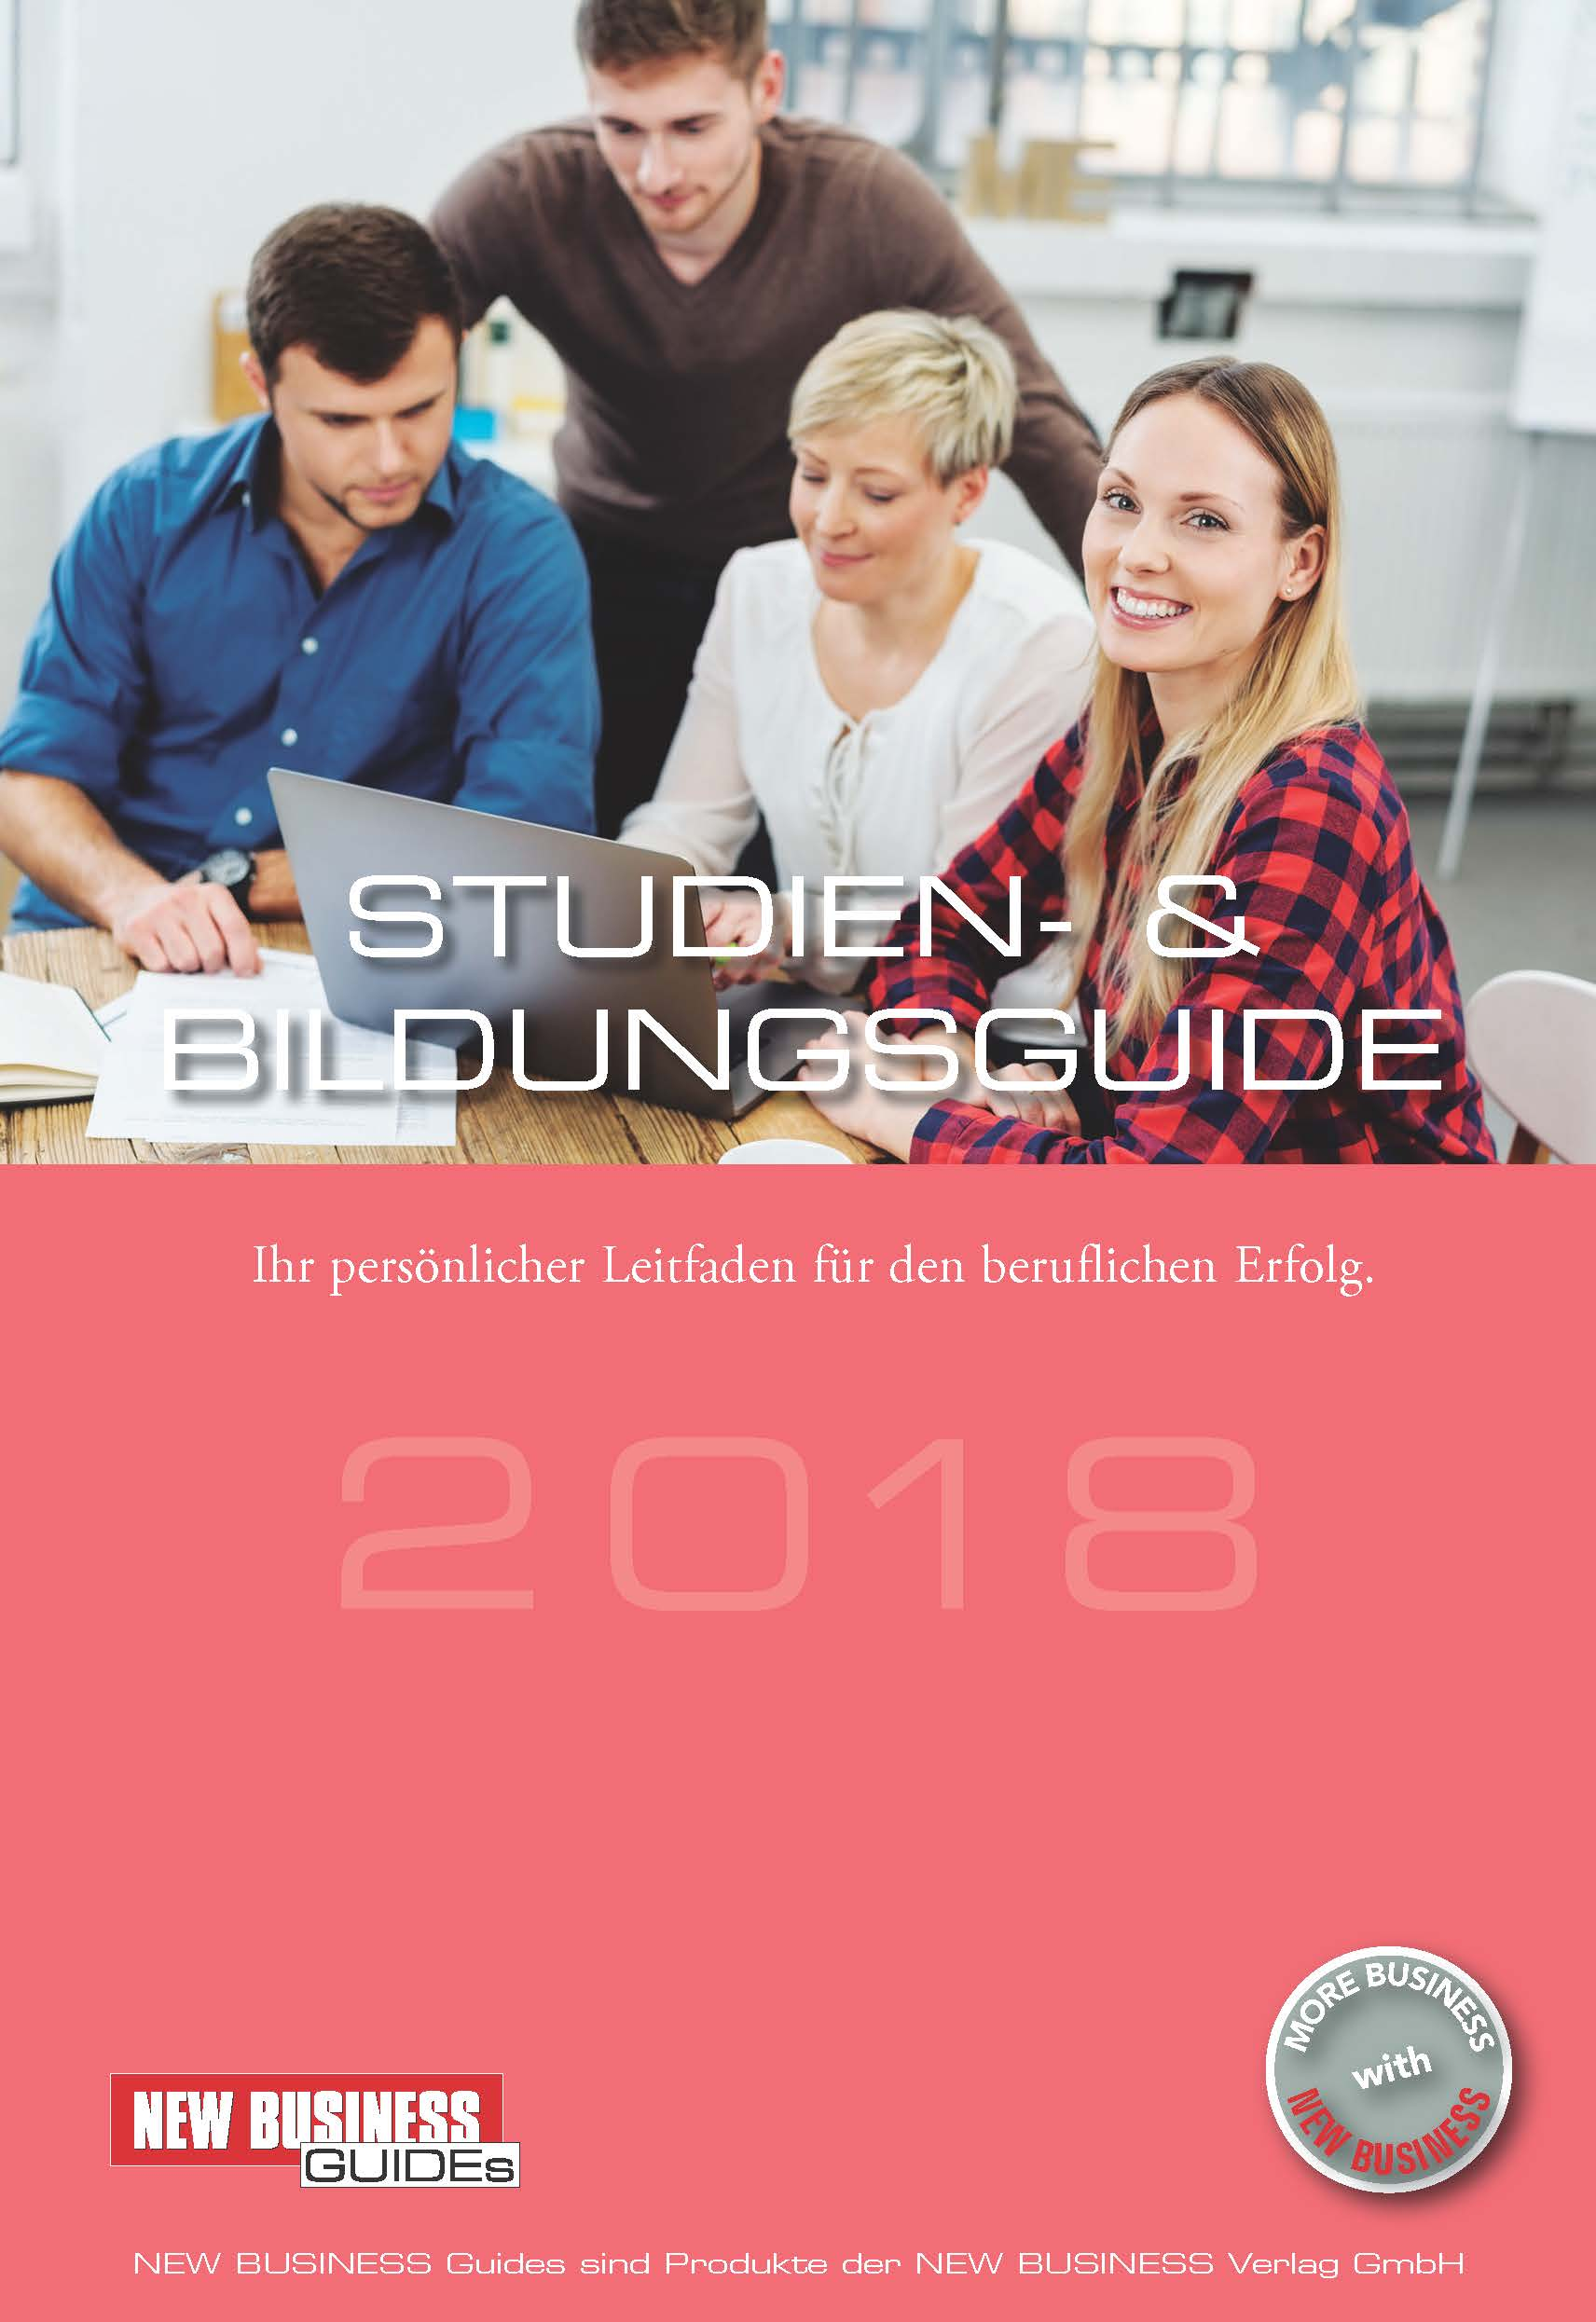 Cover: NEW BUSINESS Guides - STUDIEN- & BILDUNGSGUIDE 2018